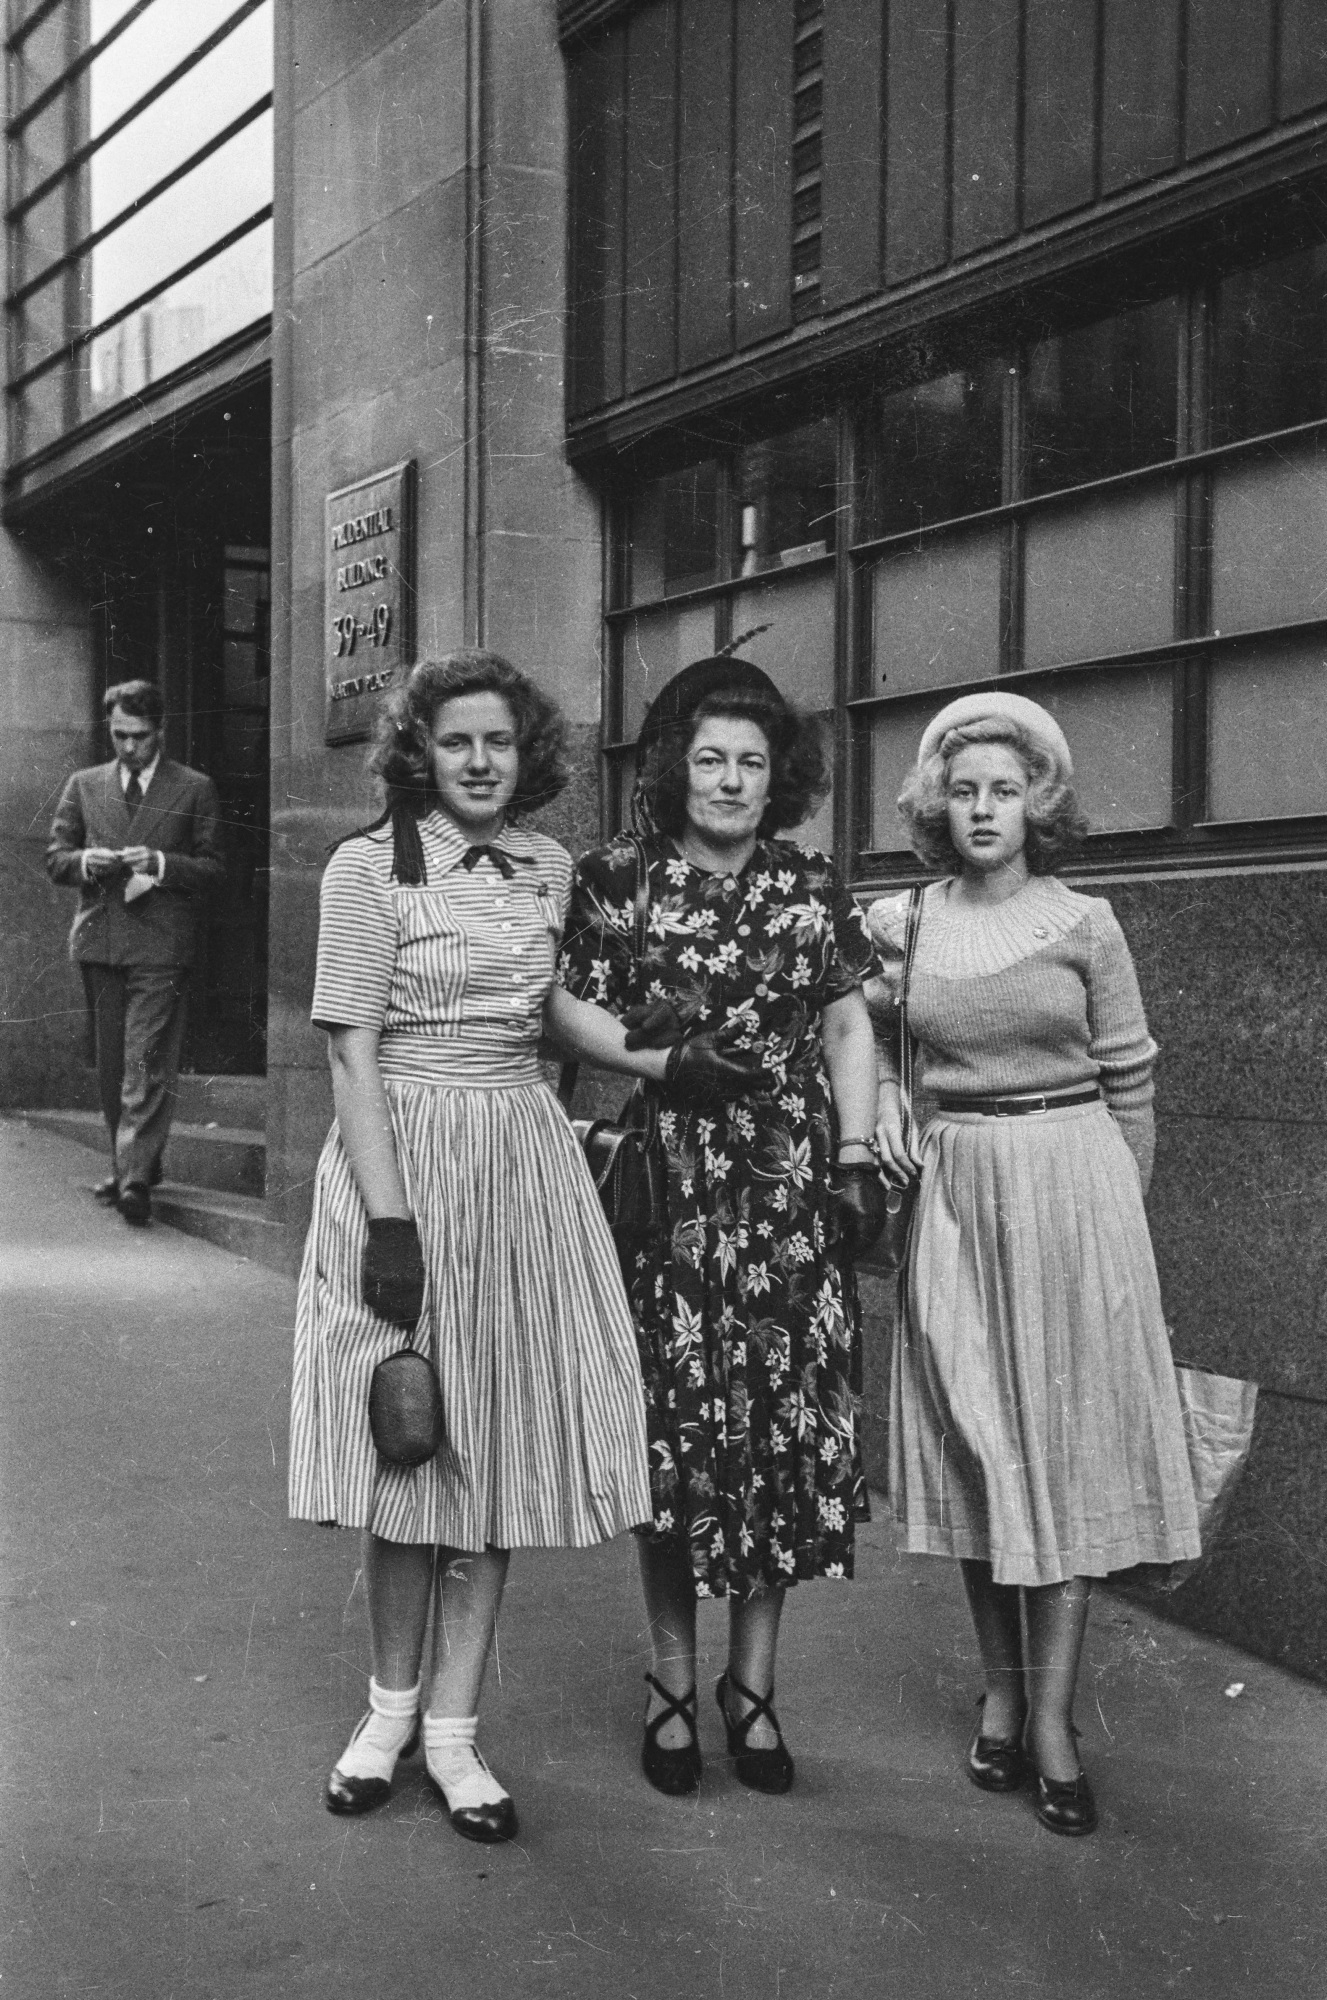 Black and white street photograph of three women linking arms standing in the street.